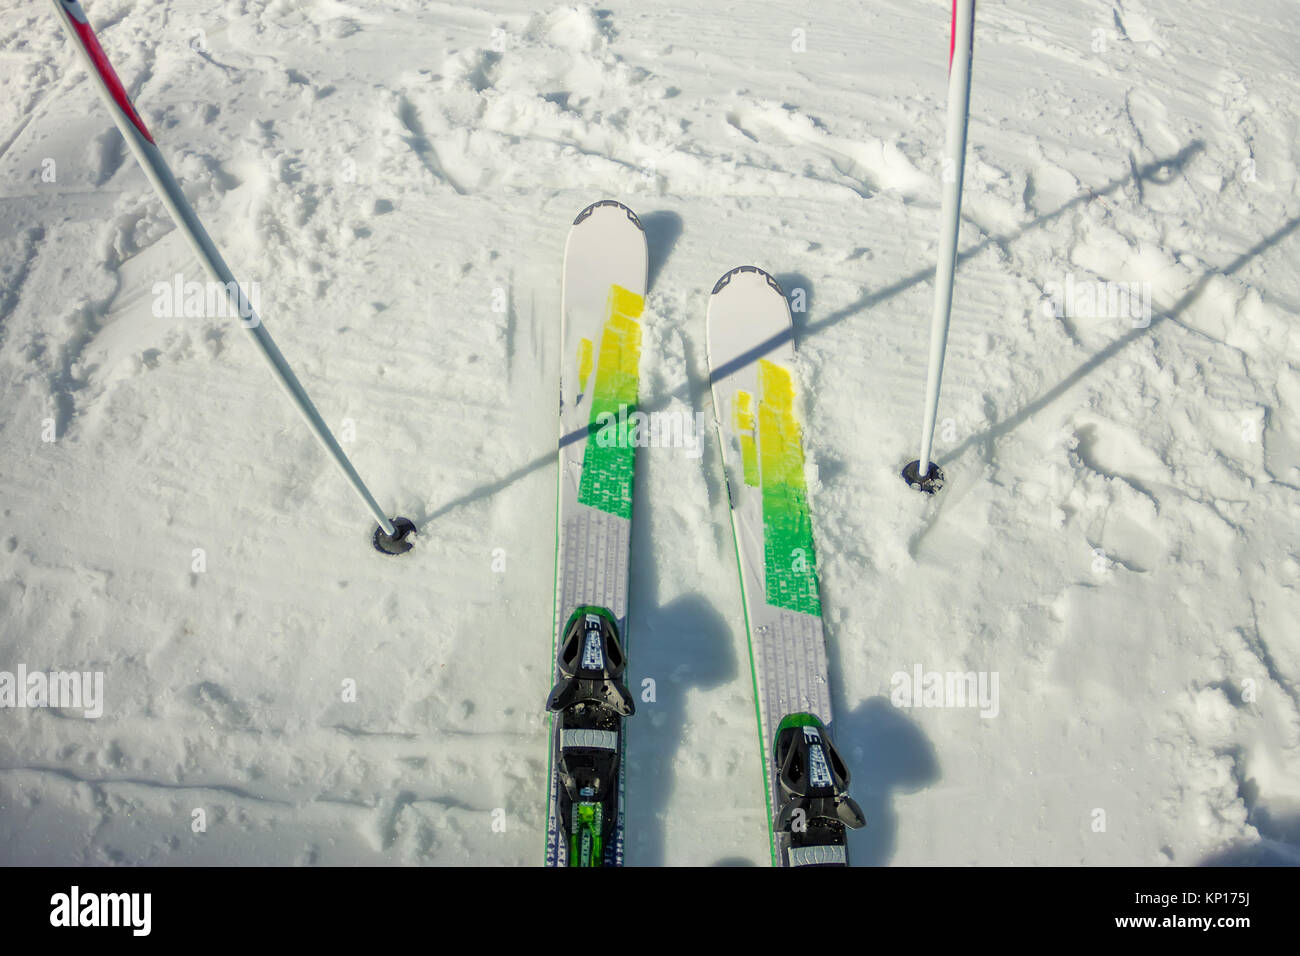 Skier first-person view of the ski snow slope. - Stock Image